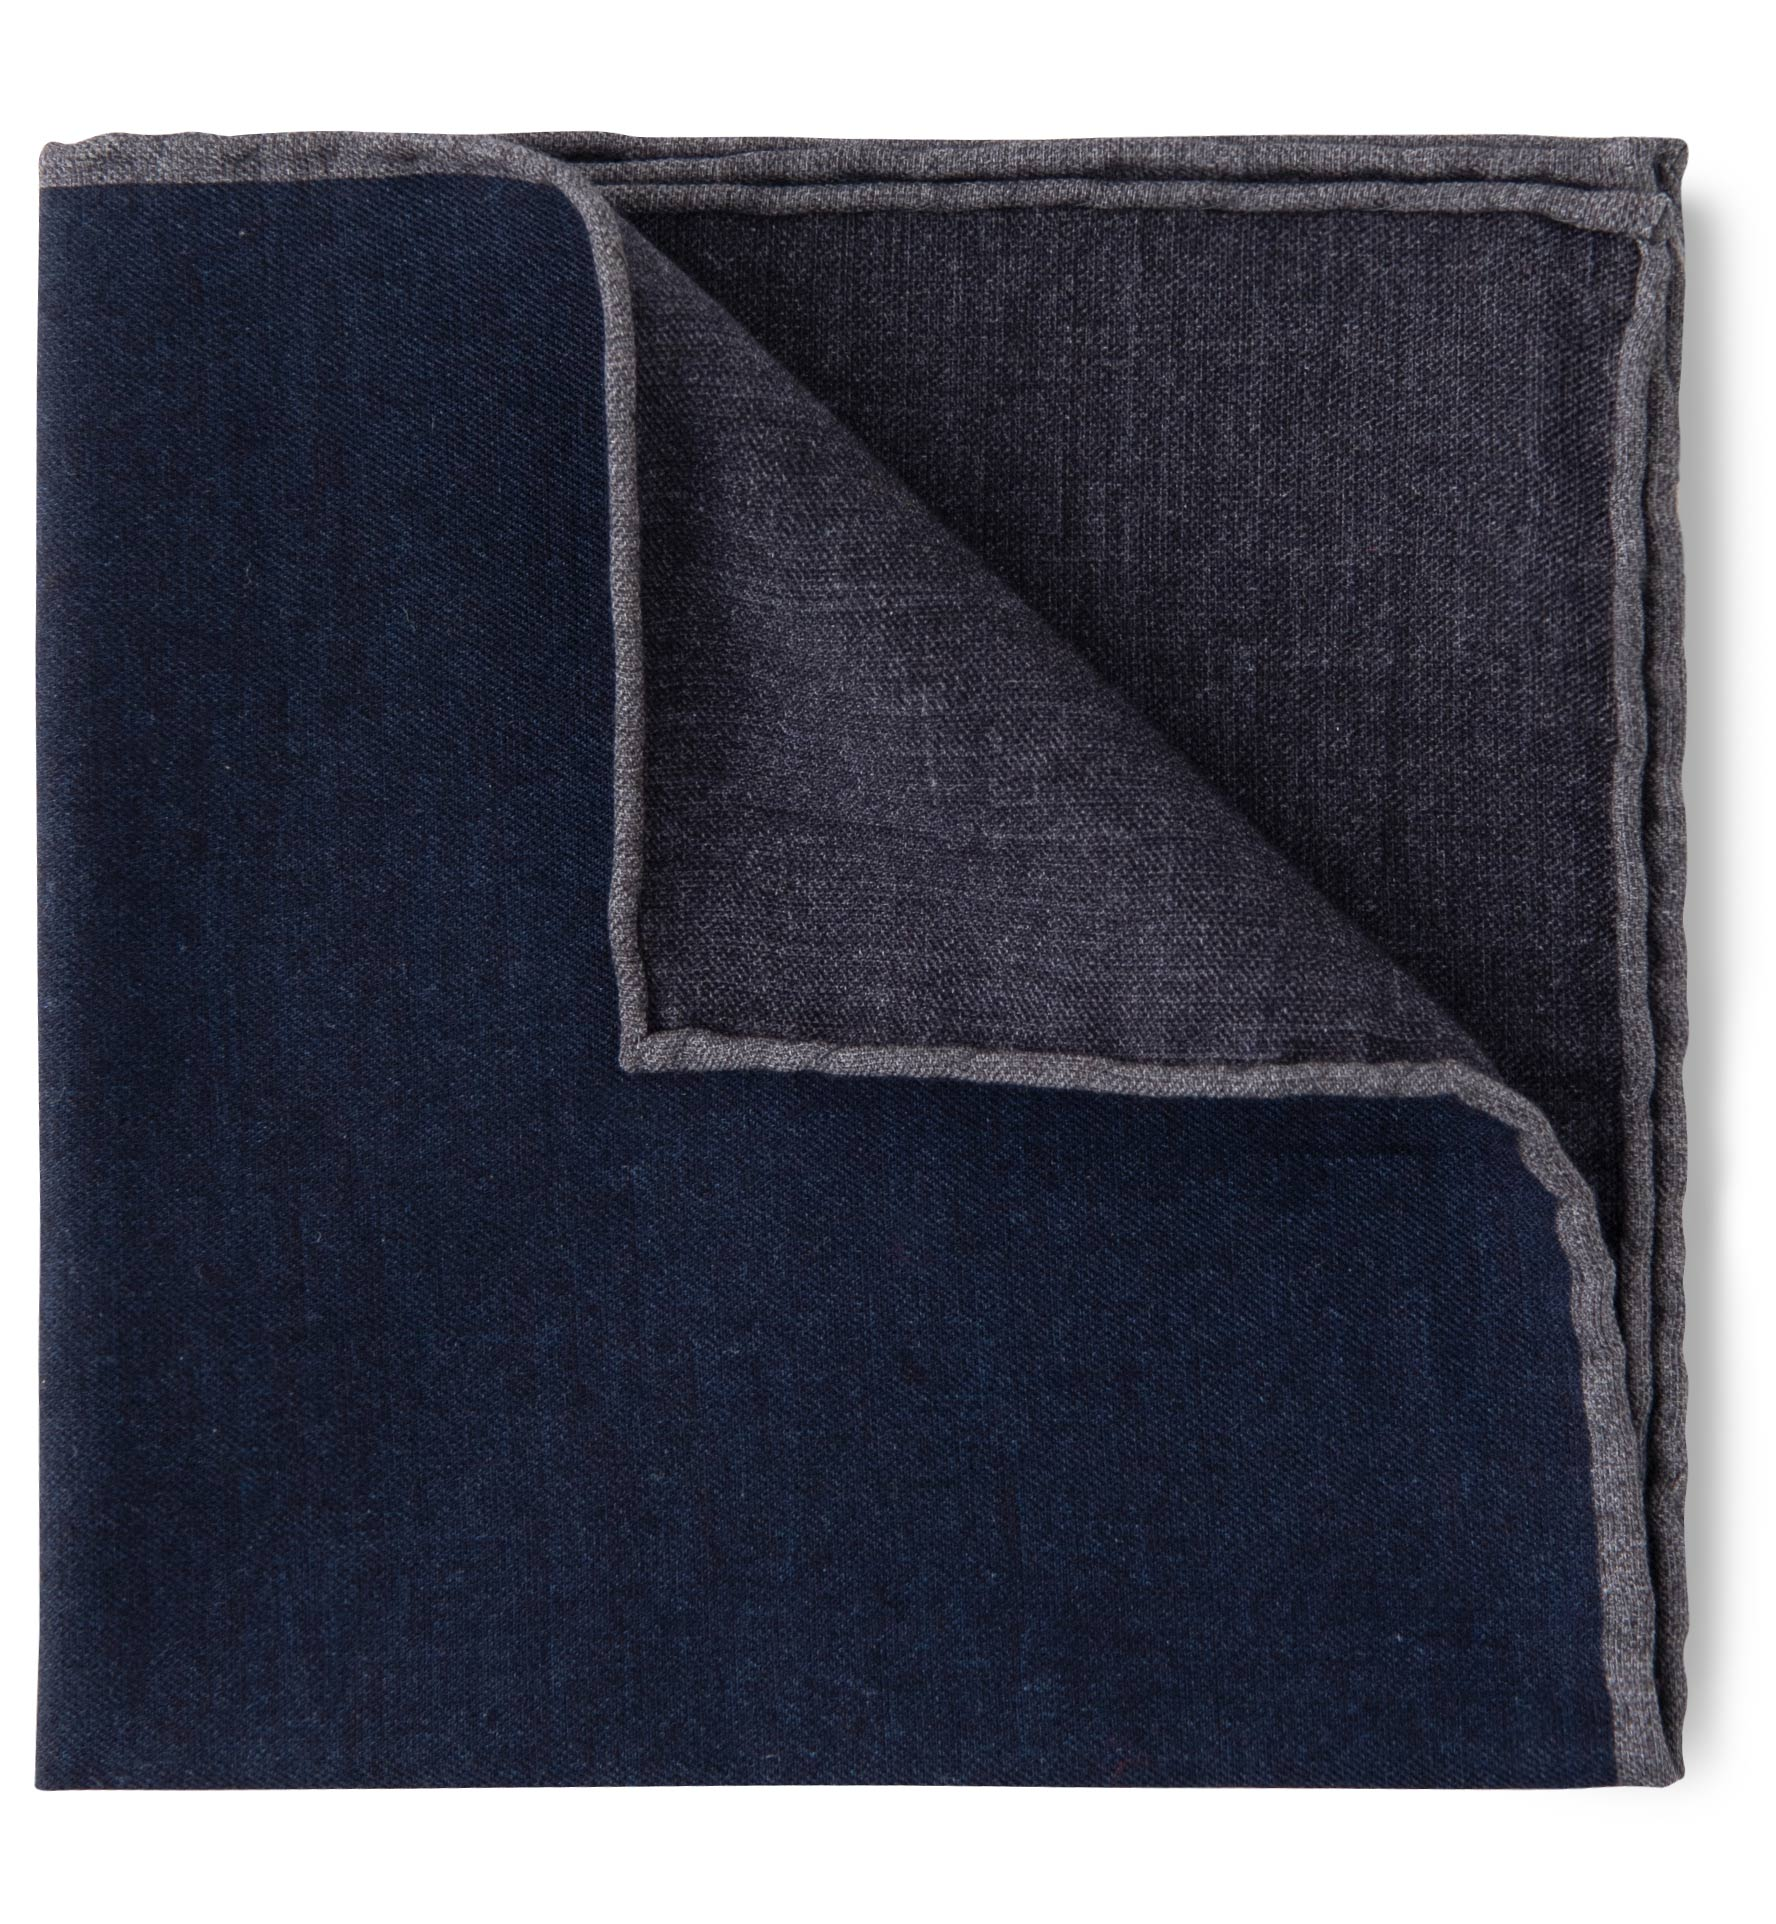 Zoom Image of Navy and Grey Cotton and Wool Pocket Square